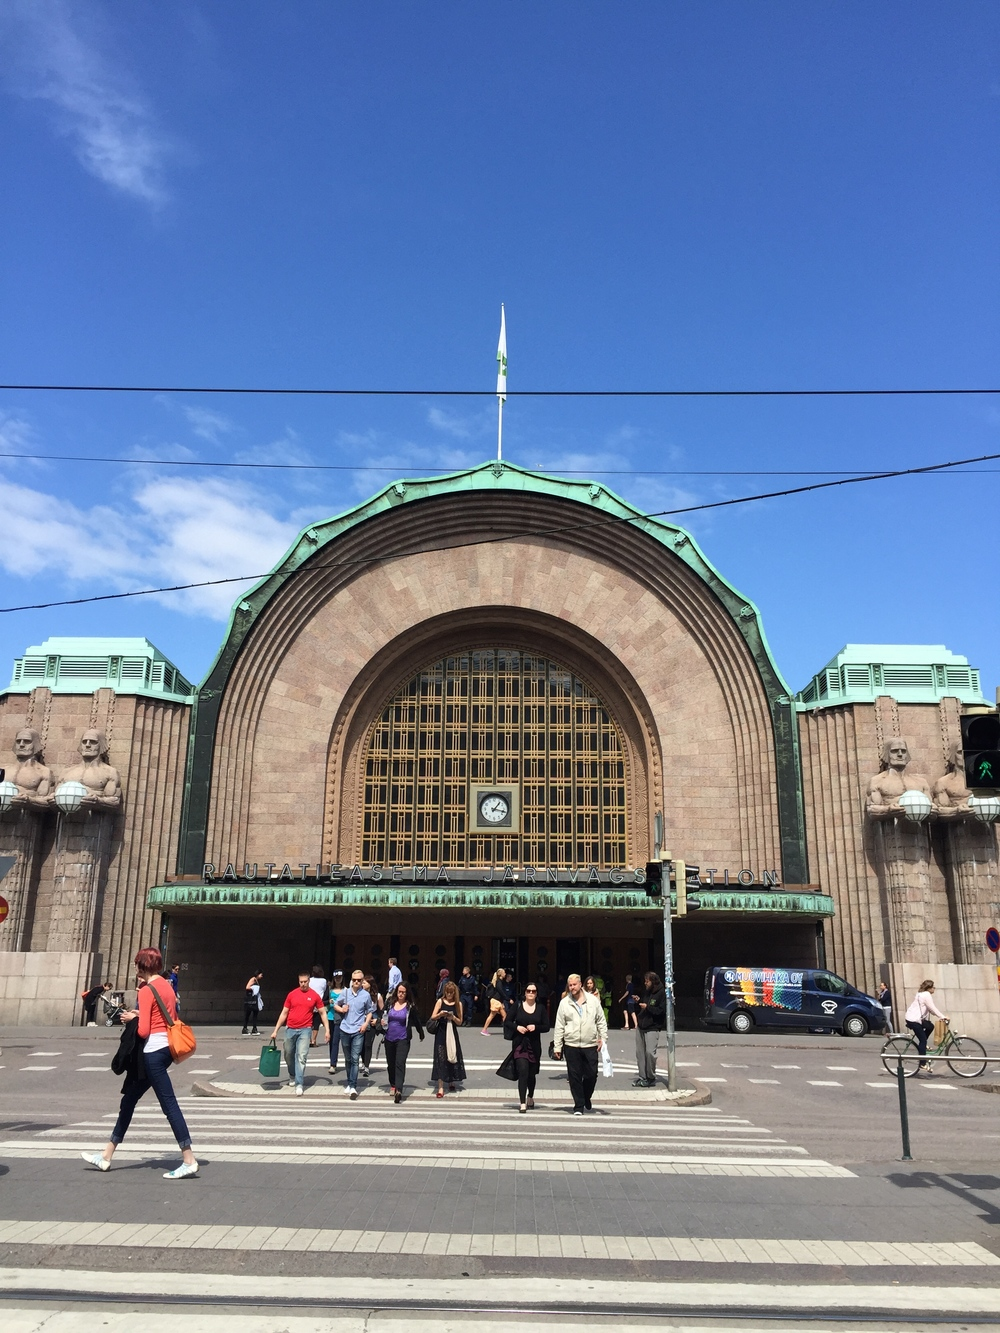 Helsinki Central Railway Station, designed by Eliel Saarinen (1919) / 9 July 2015